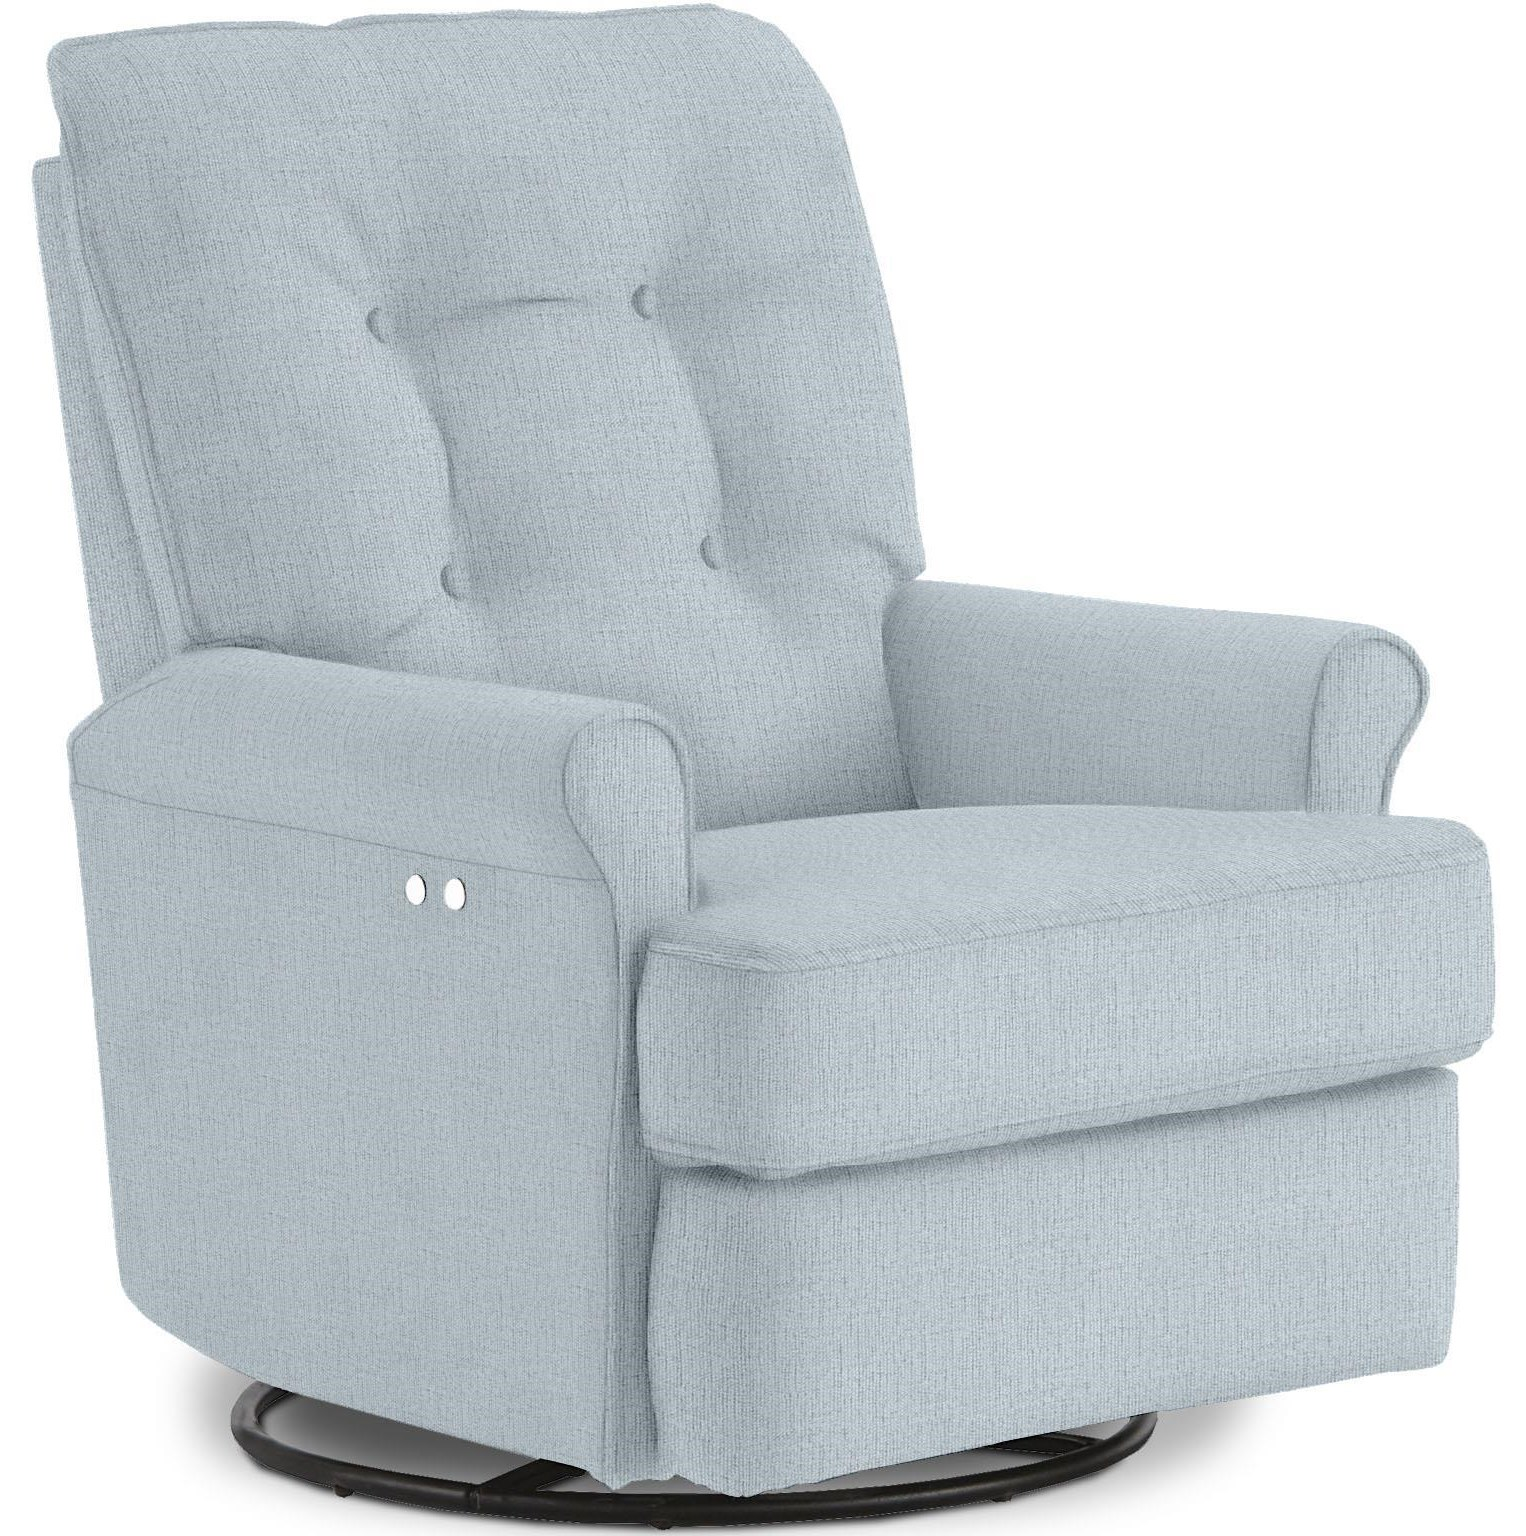 Amy Swivel Gliding Recliner by Best Home Furnishings at Crowley Furniture & Mattress